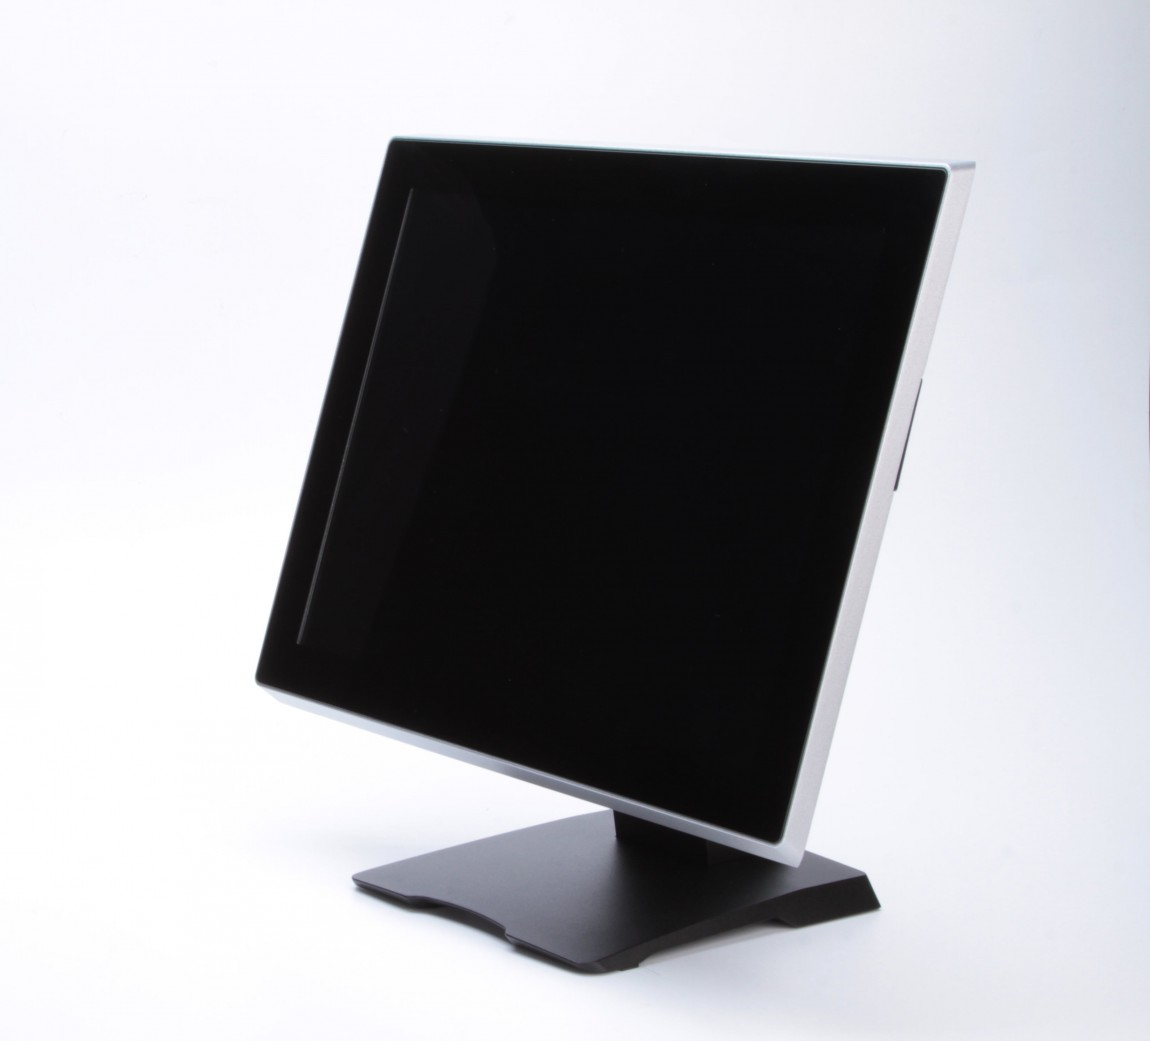 PP7000J2 15 inch TM2600 touch monitor-12 ar1-min